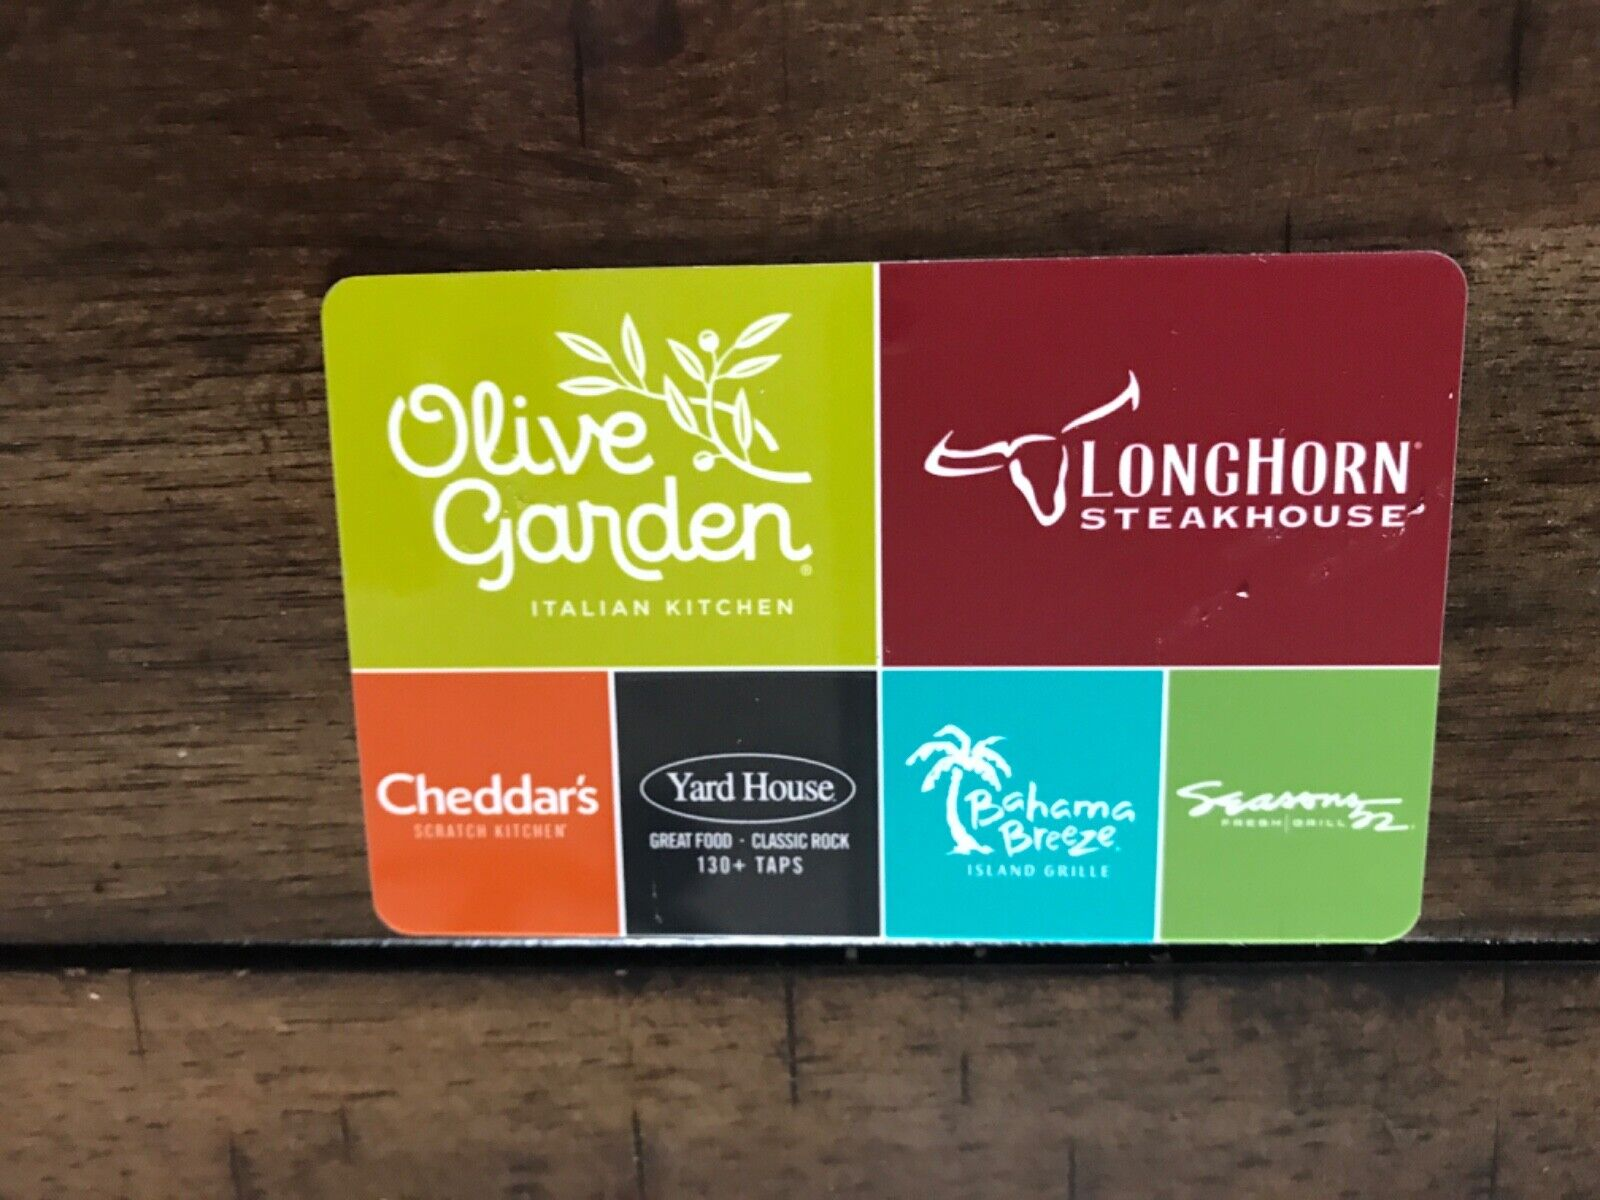 50 Olive Garden More Gift Card Free Shipping - $44.41